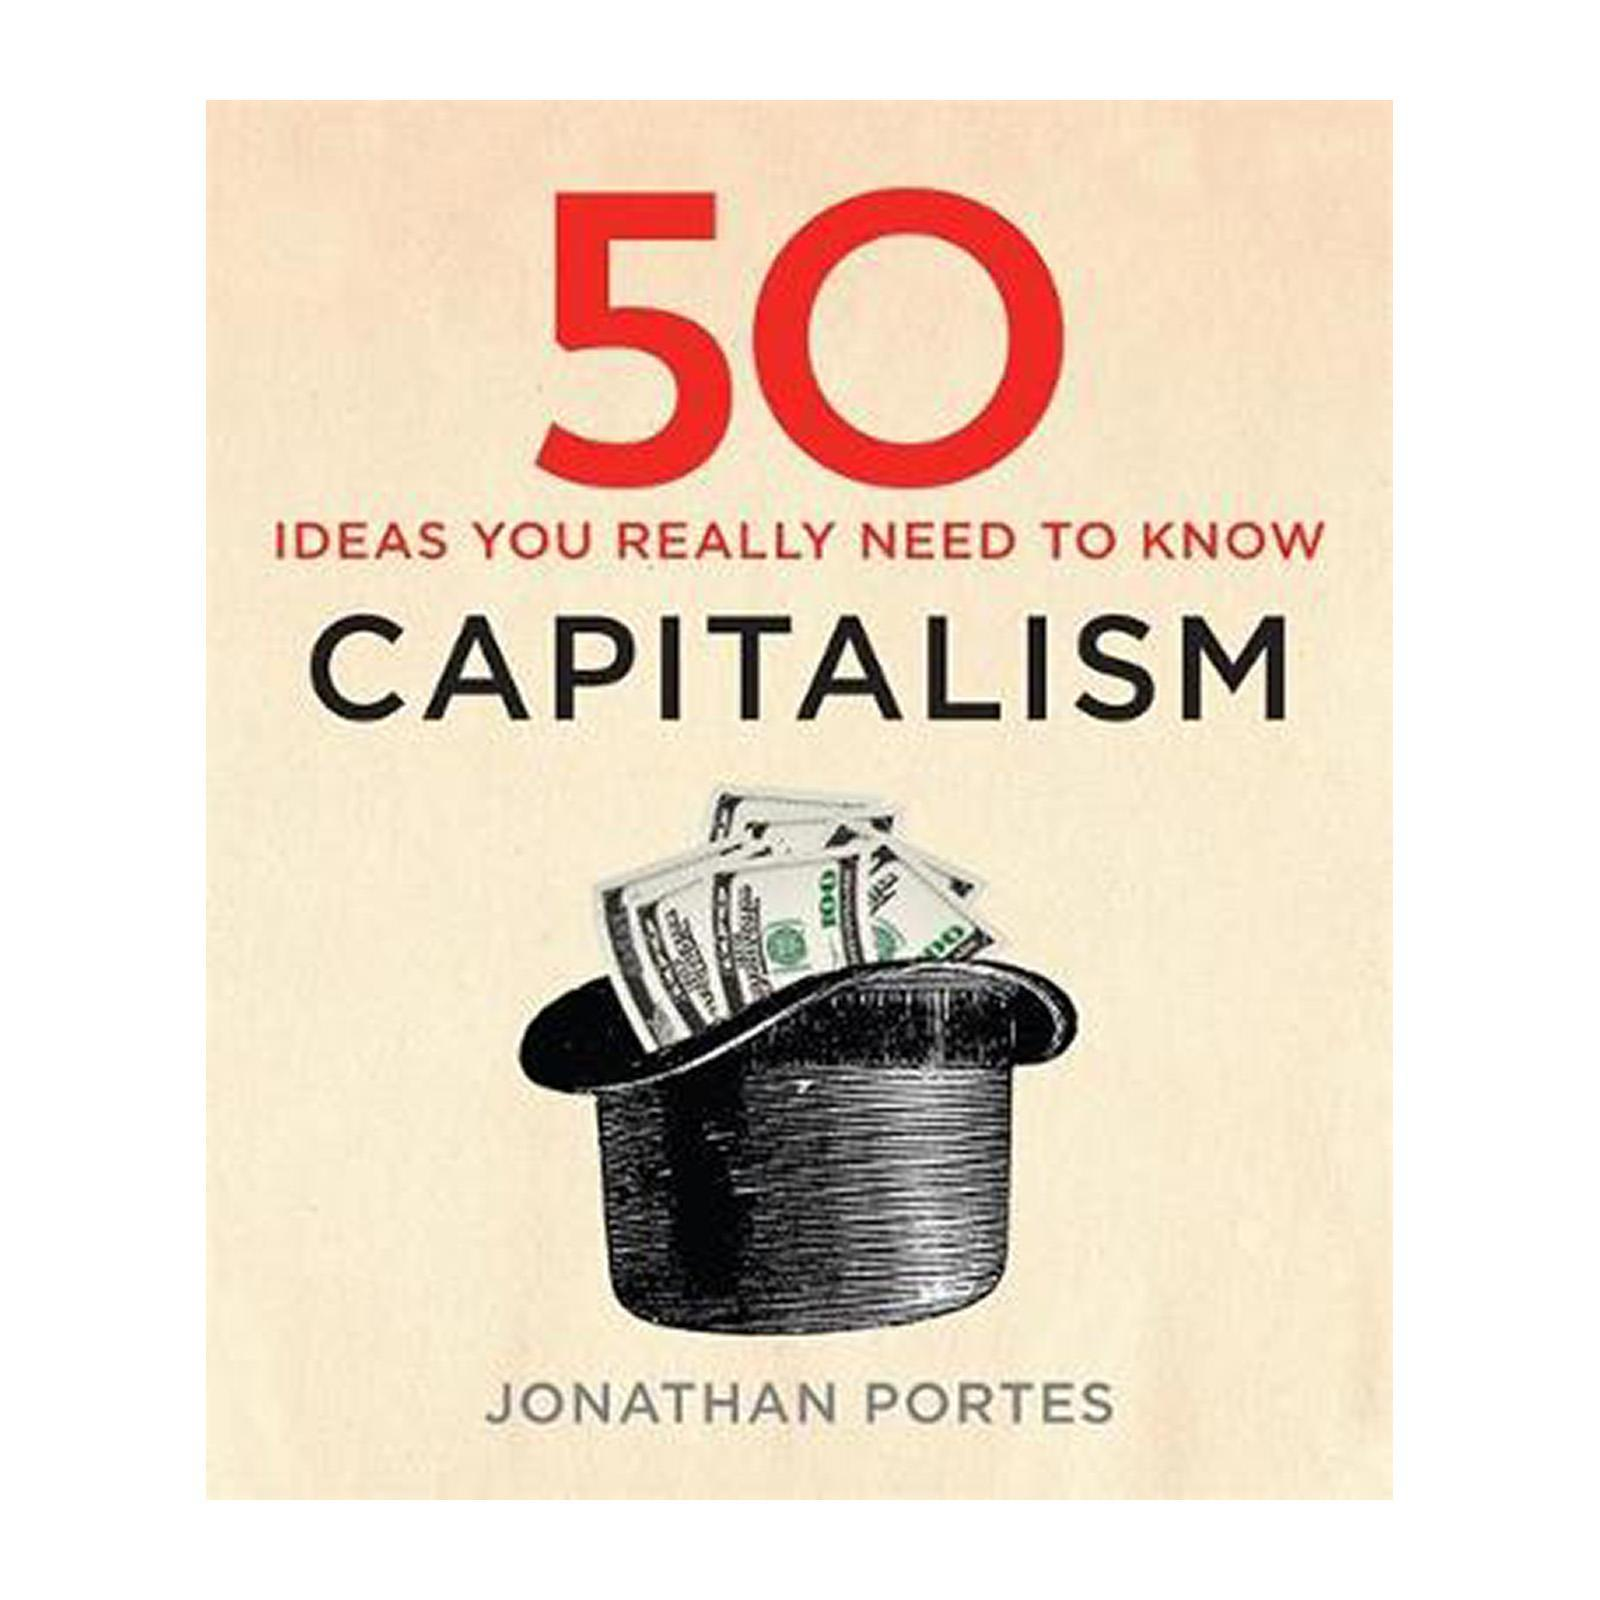 50 Capitalism Ideas You Really Need To Know (Hardcover)